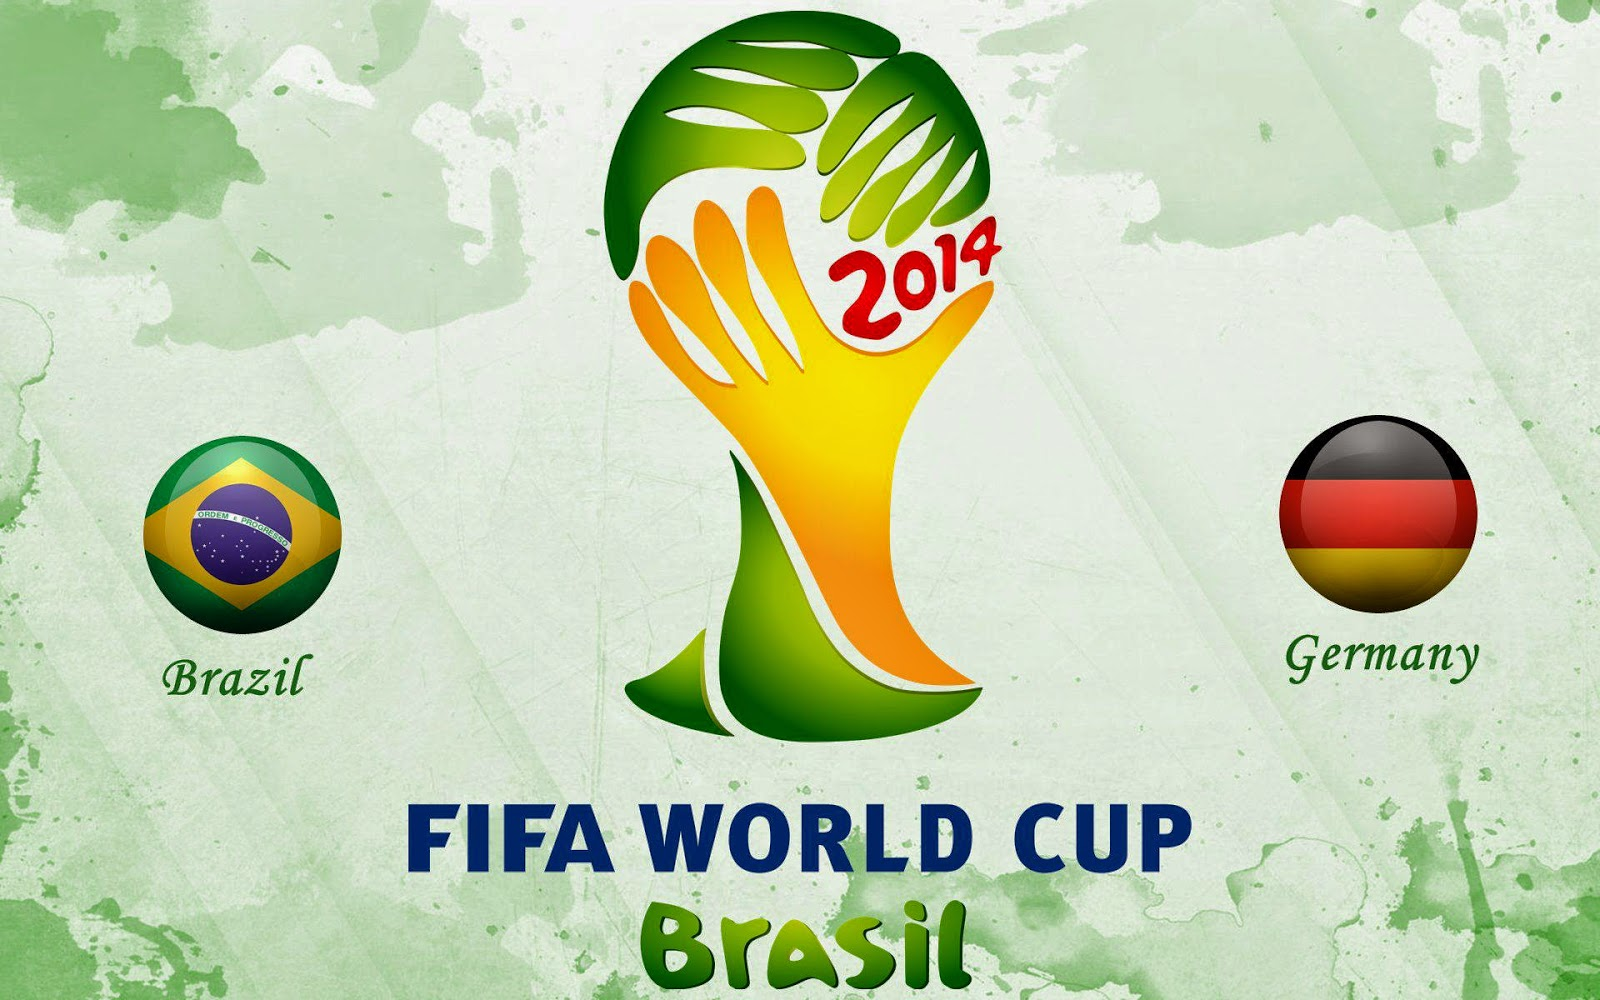 Fifa World Cup 2014 Semi Final 1 Live Streaming Online FREE